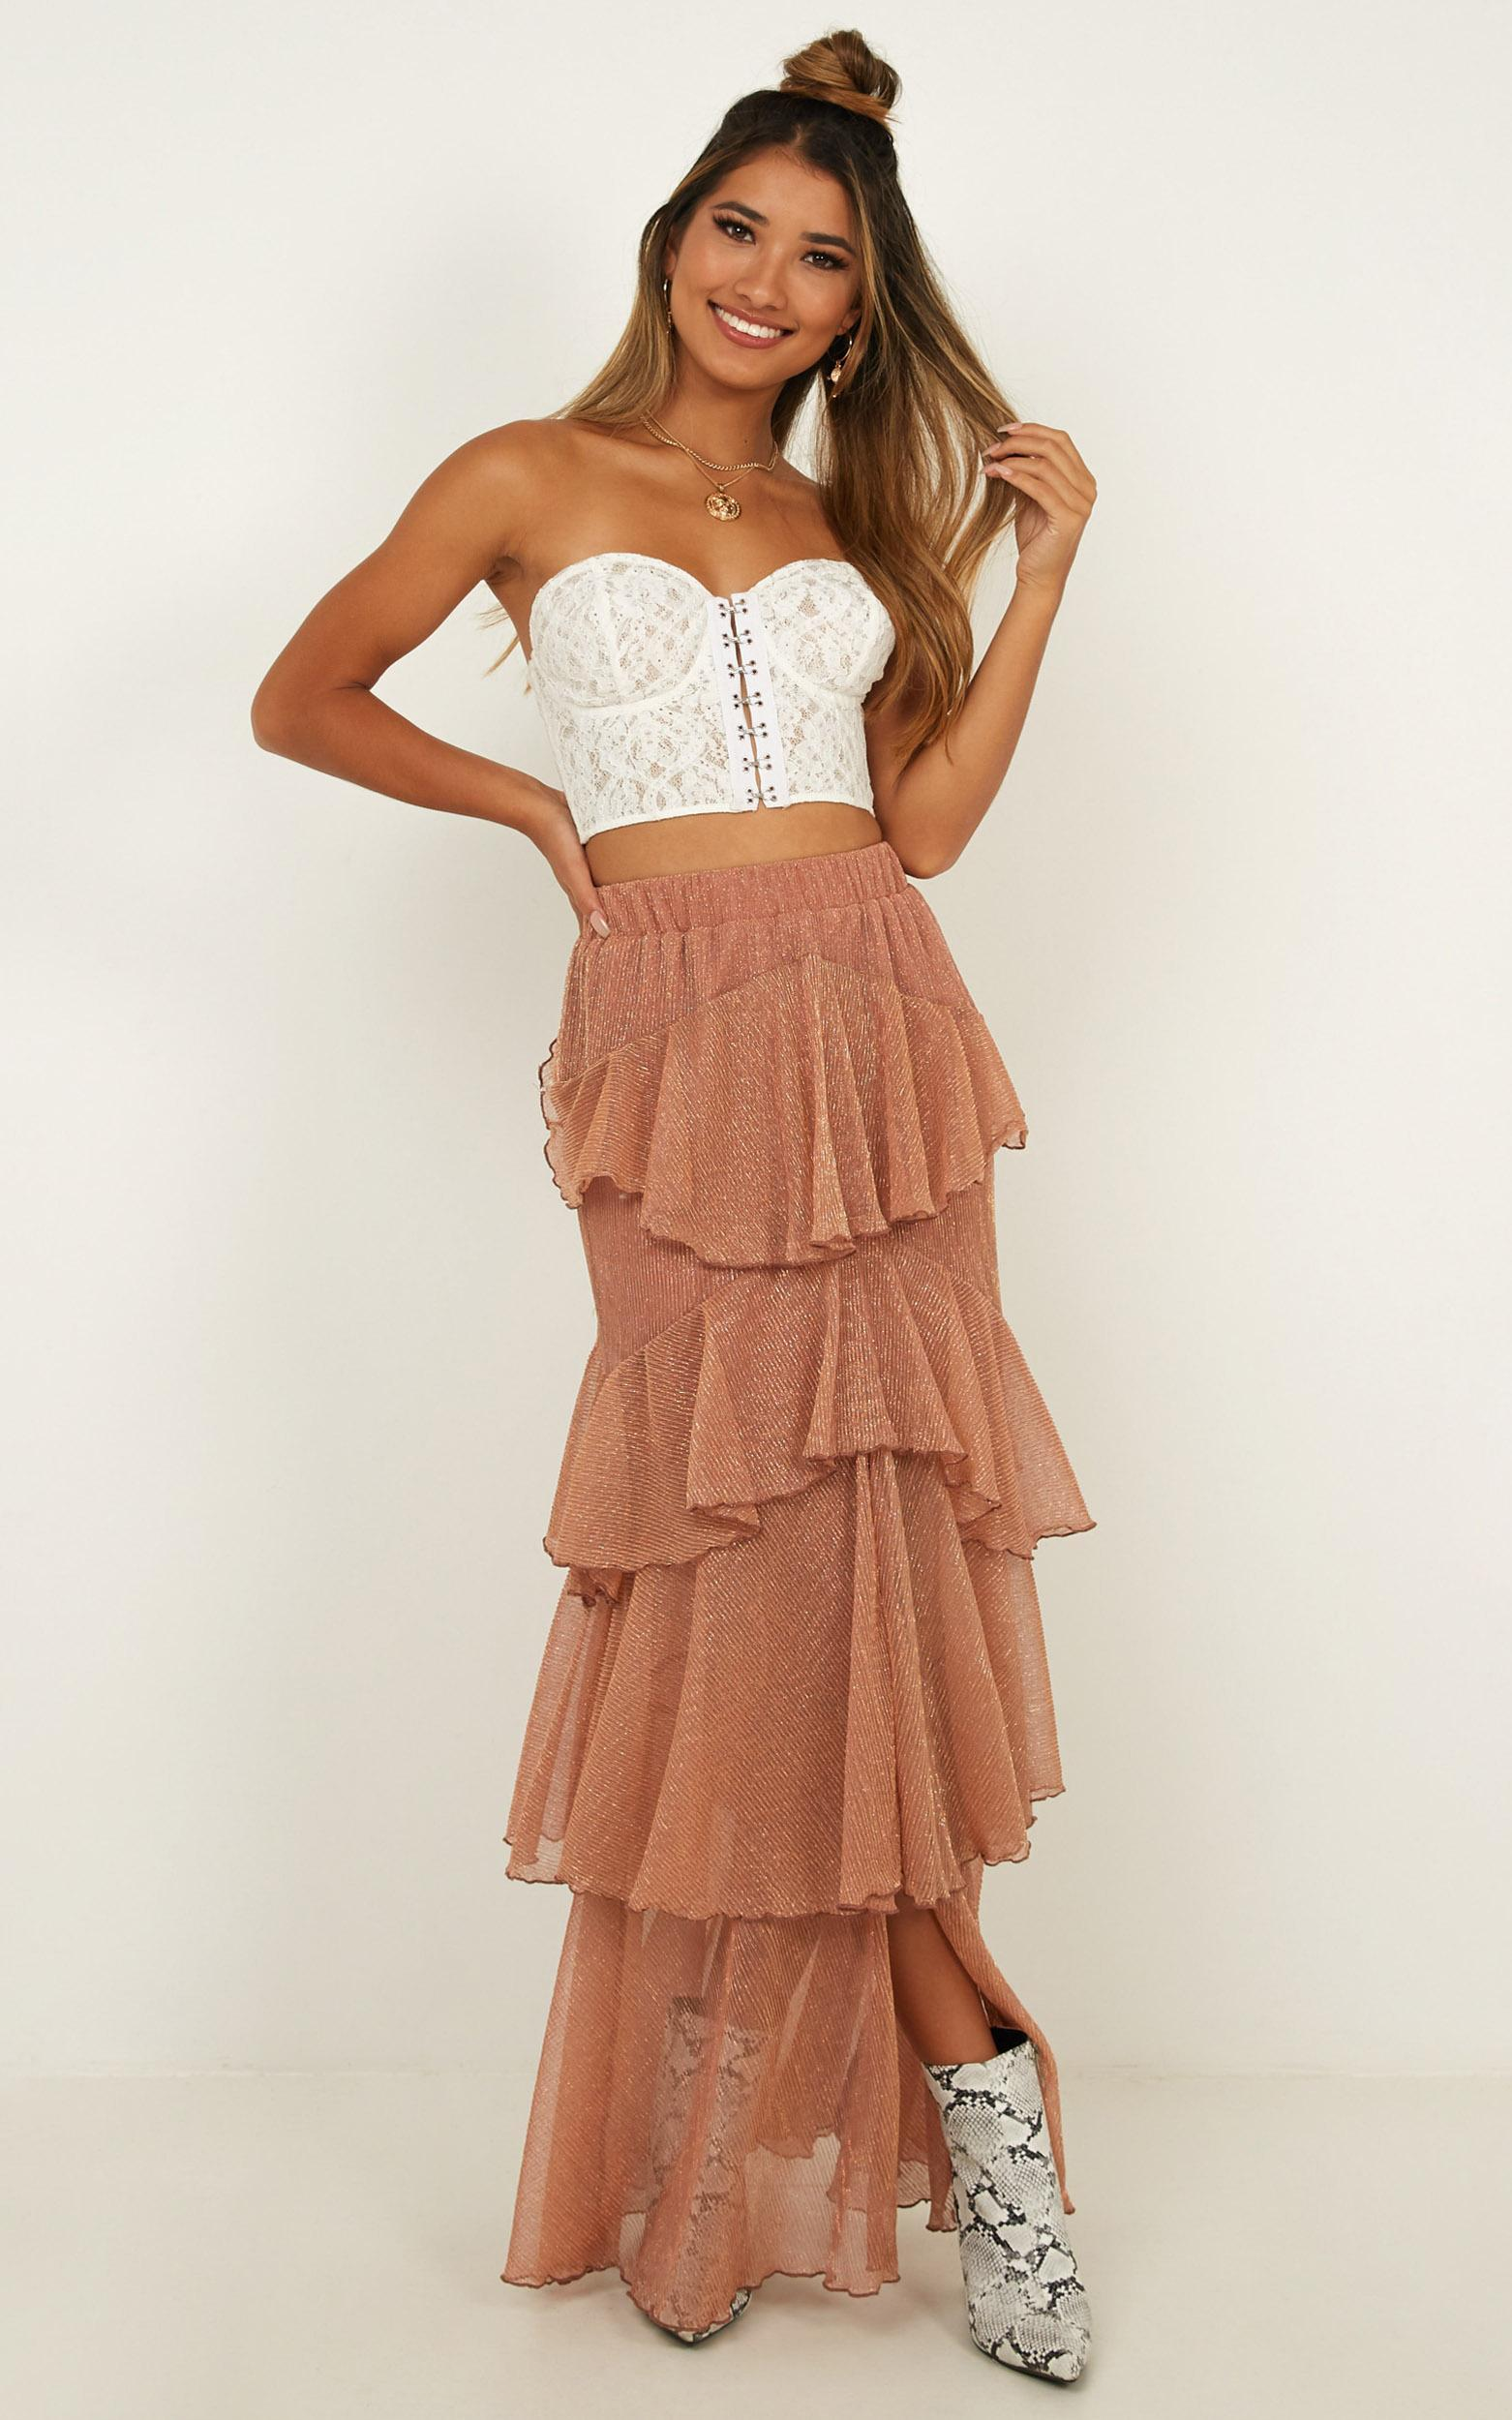 Storms and Saints Skirt in rose gold mesh - 12 (L), Rose Gold, hi-res image number null